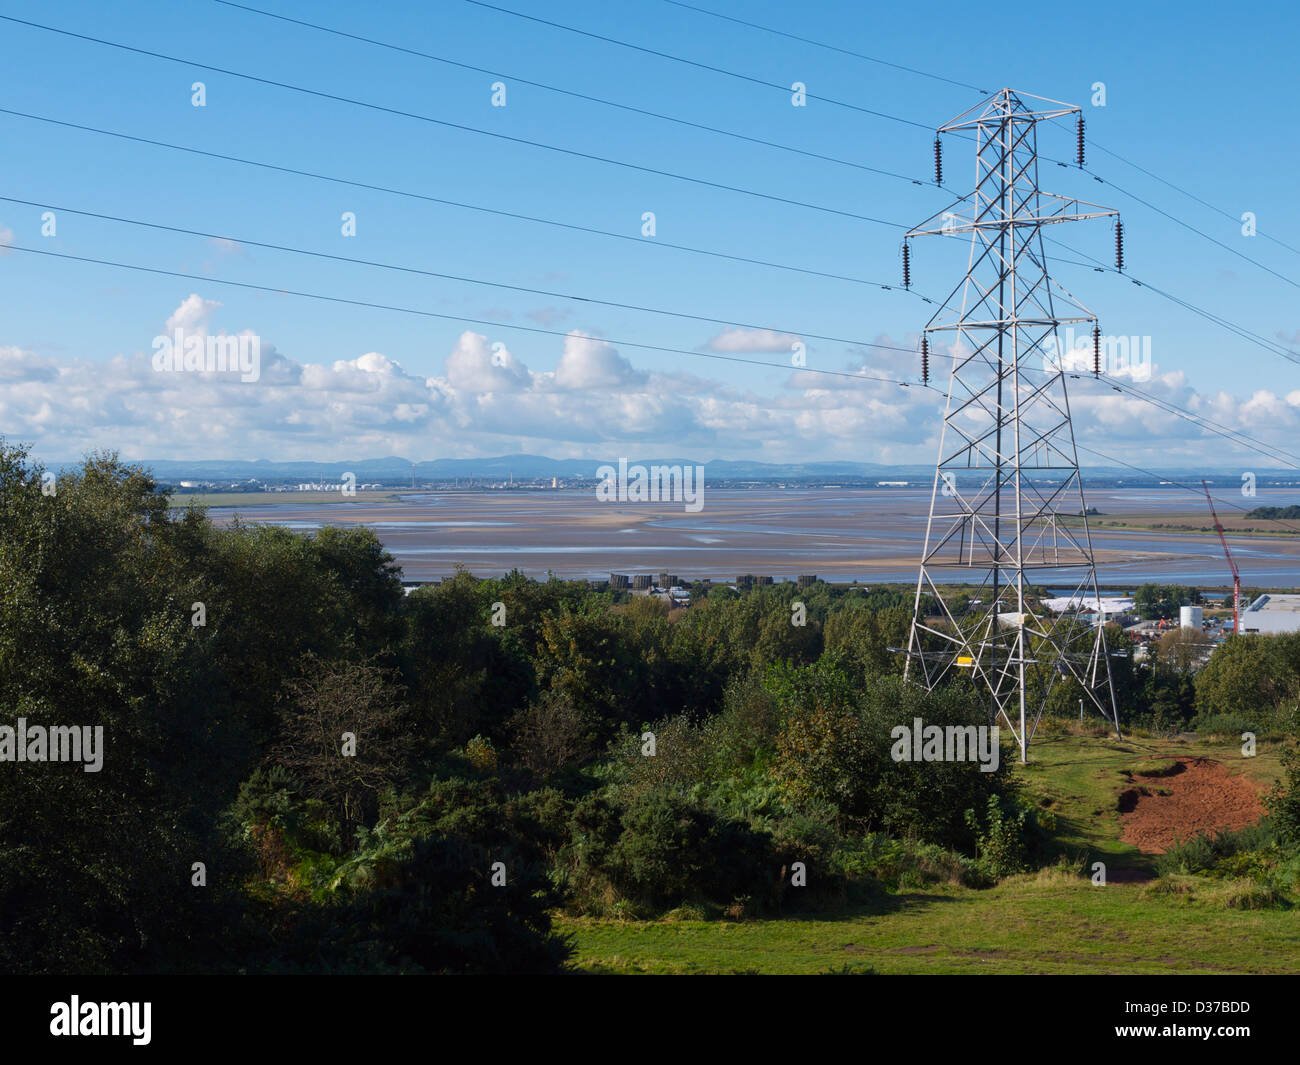 A electricity pylon and the river Mersey in the background with the tide out - Stock Image